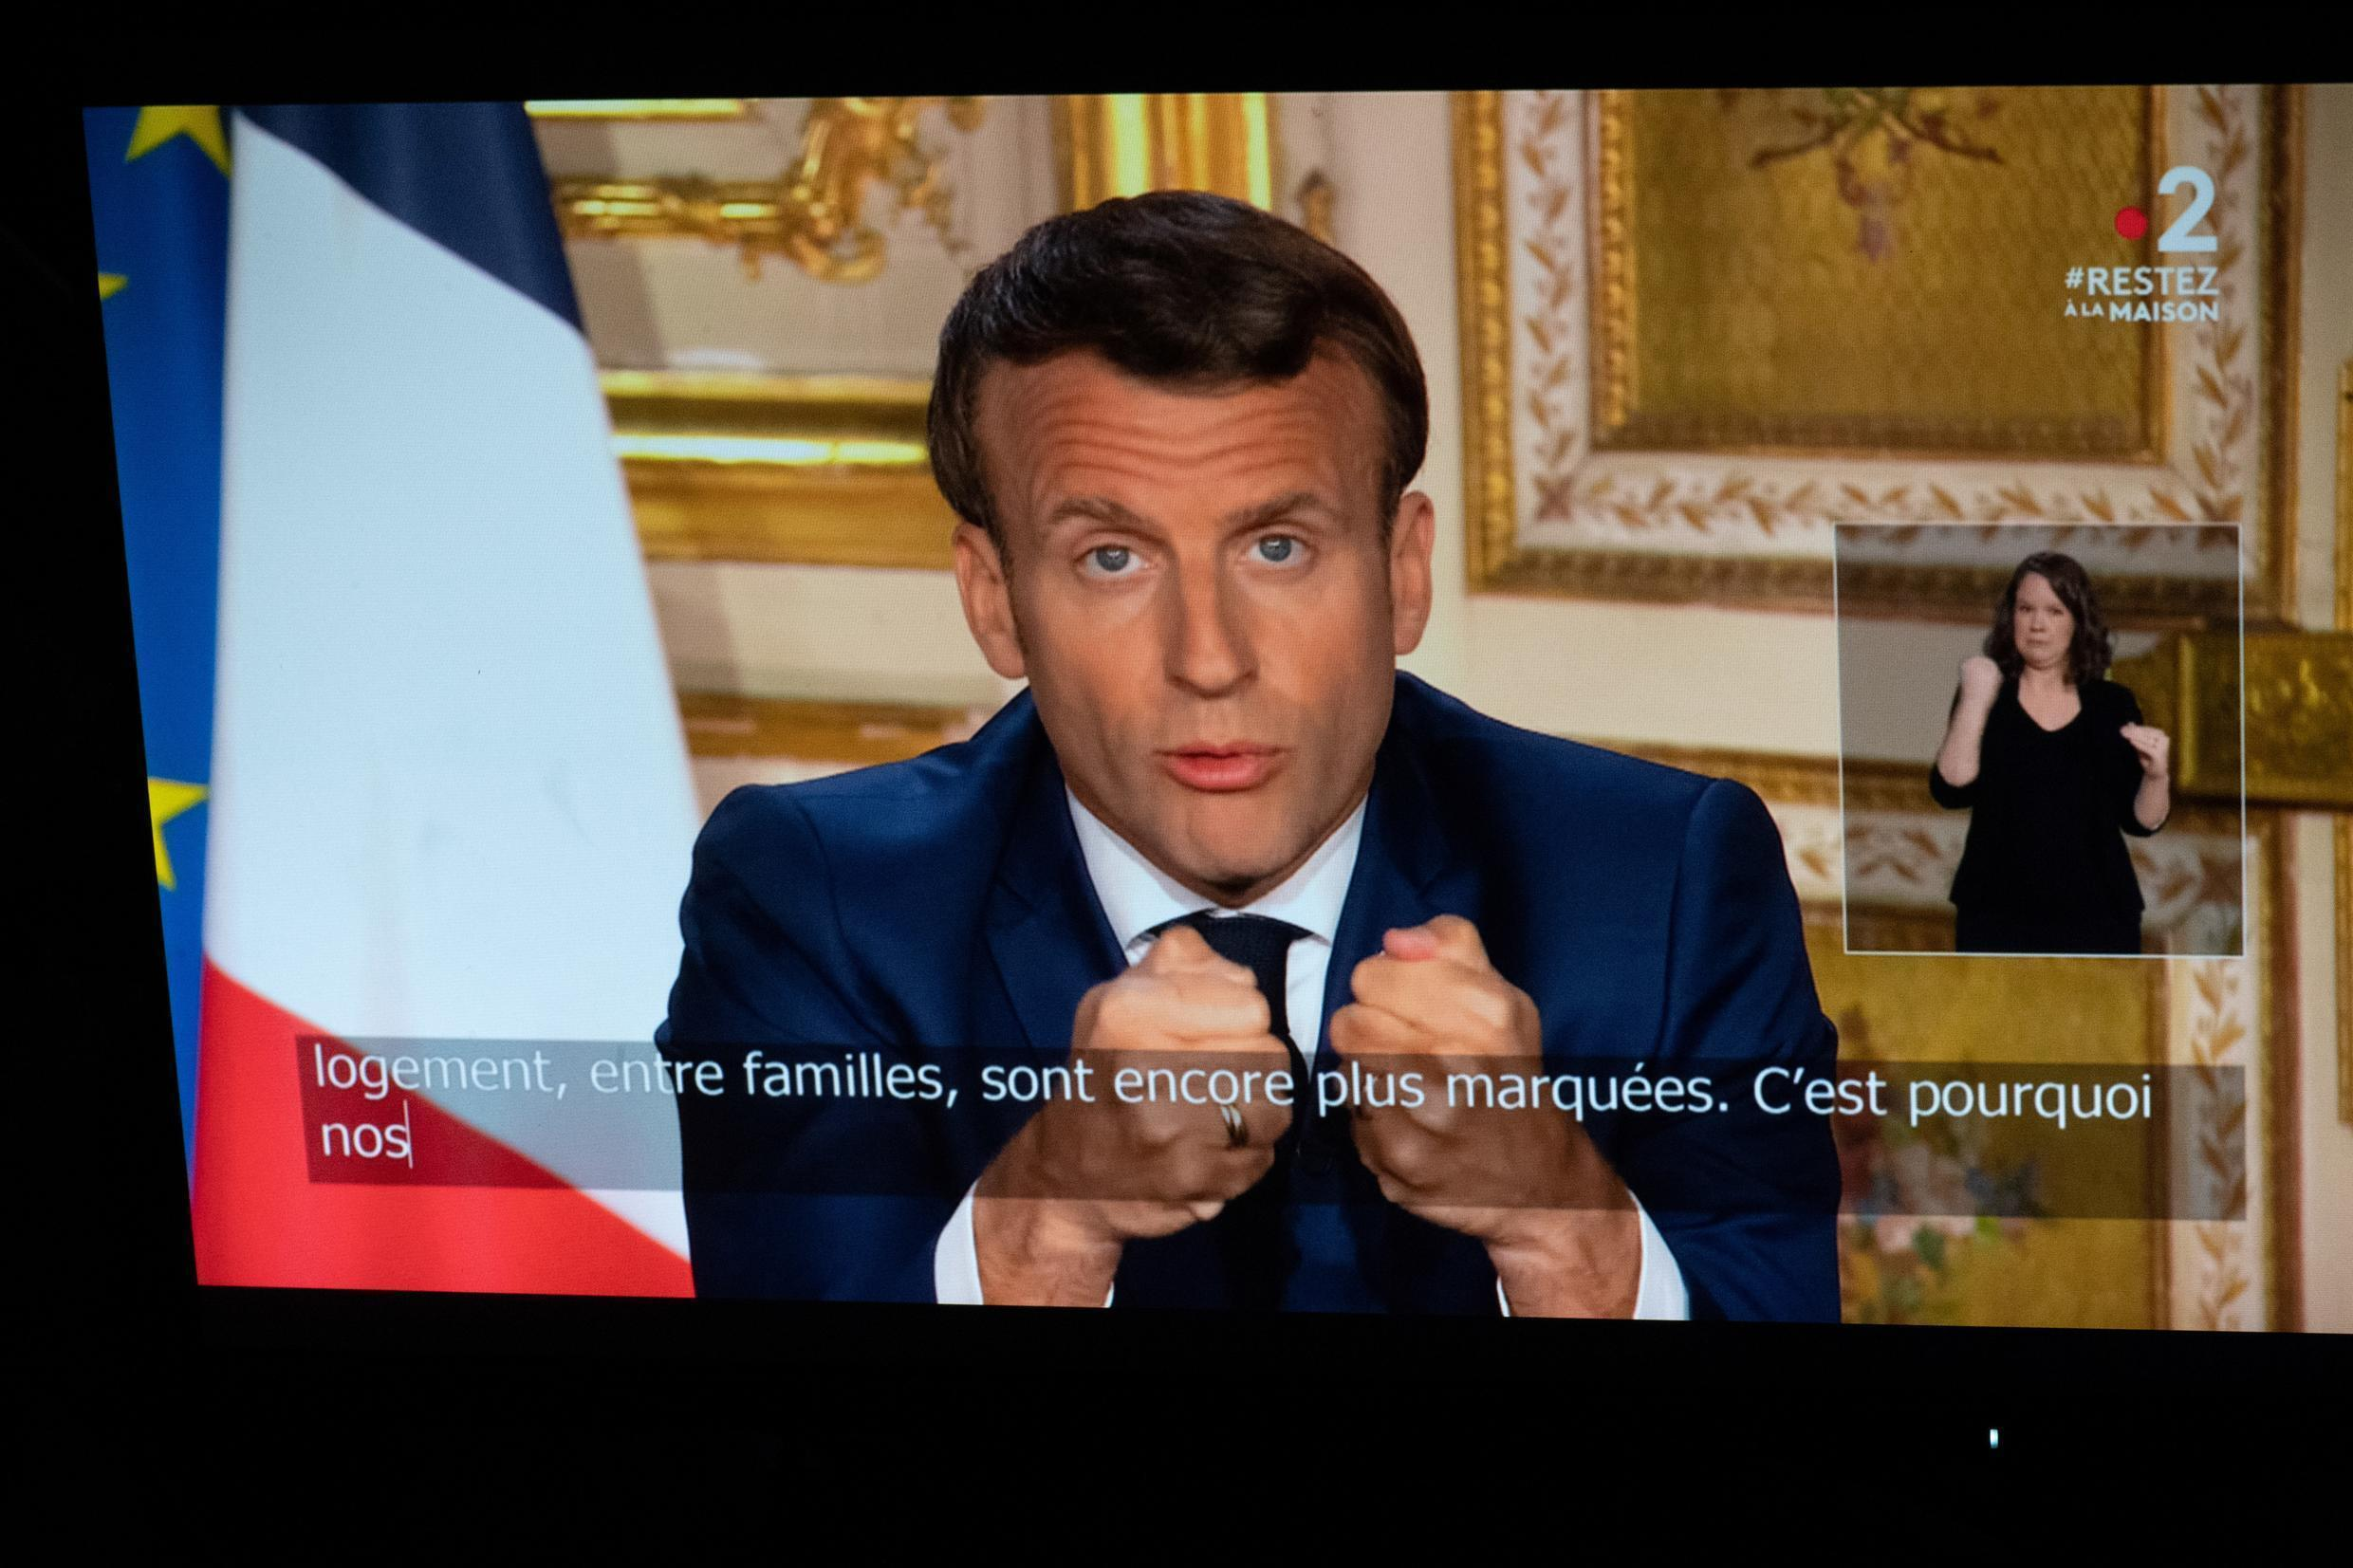 French President Emmanuel Macron addressing the nation on 13 April, 2020 and admitting the government made mistakes in its handling of the coronavirus pandemic